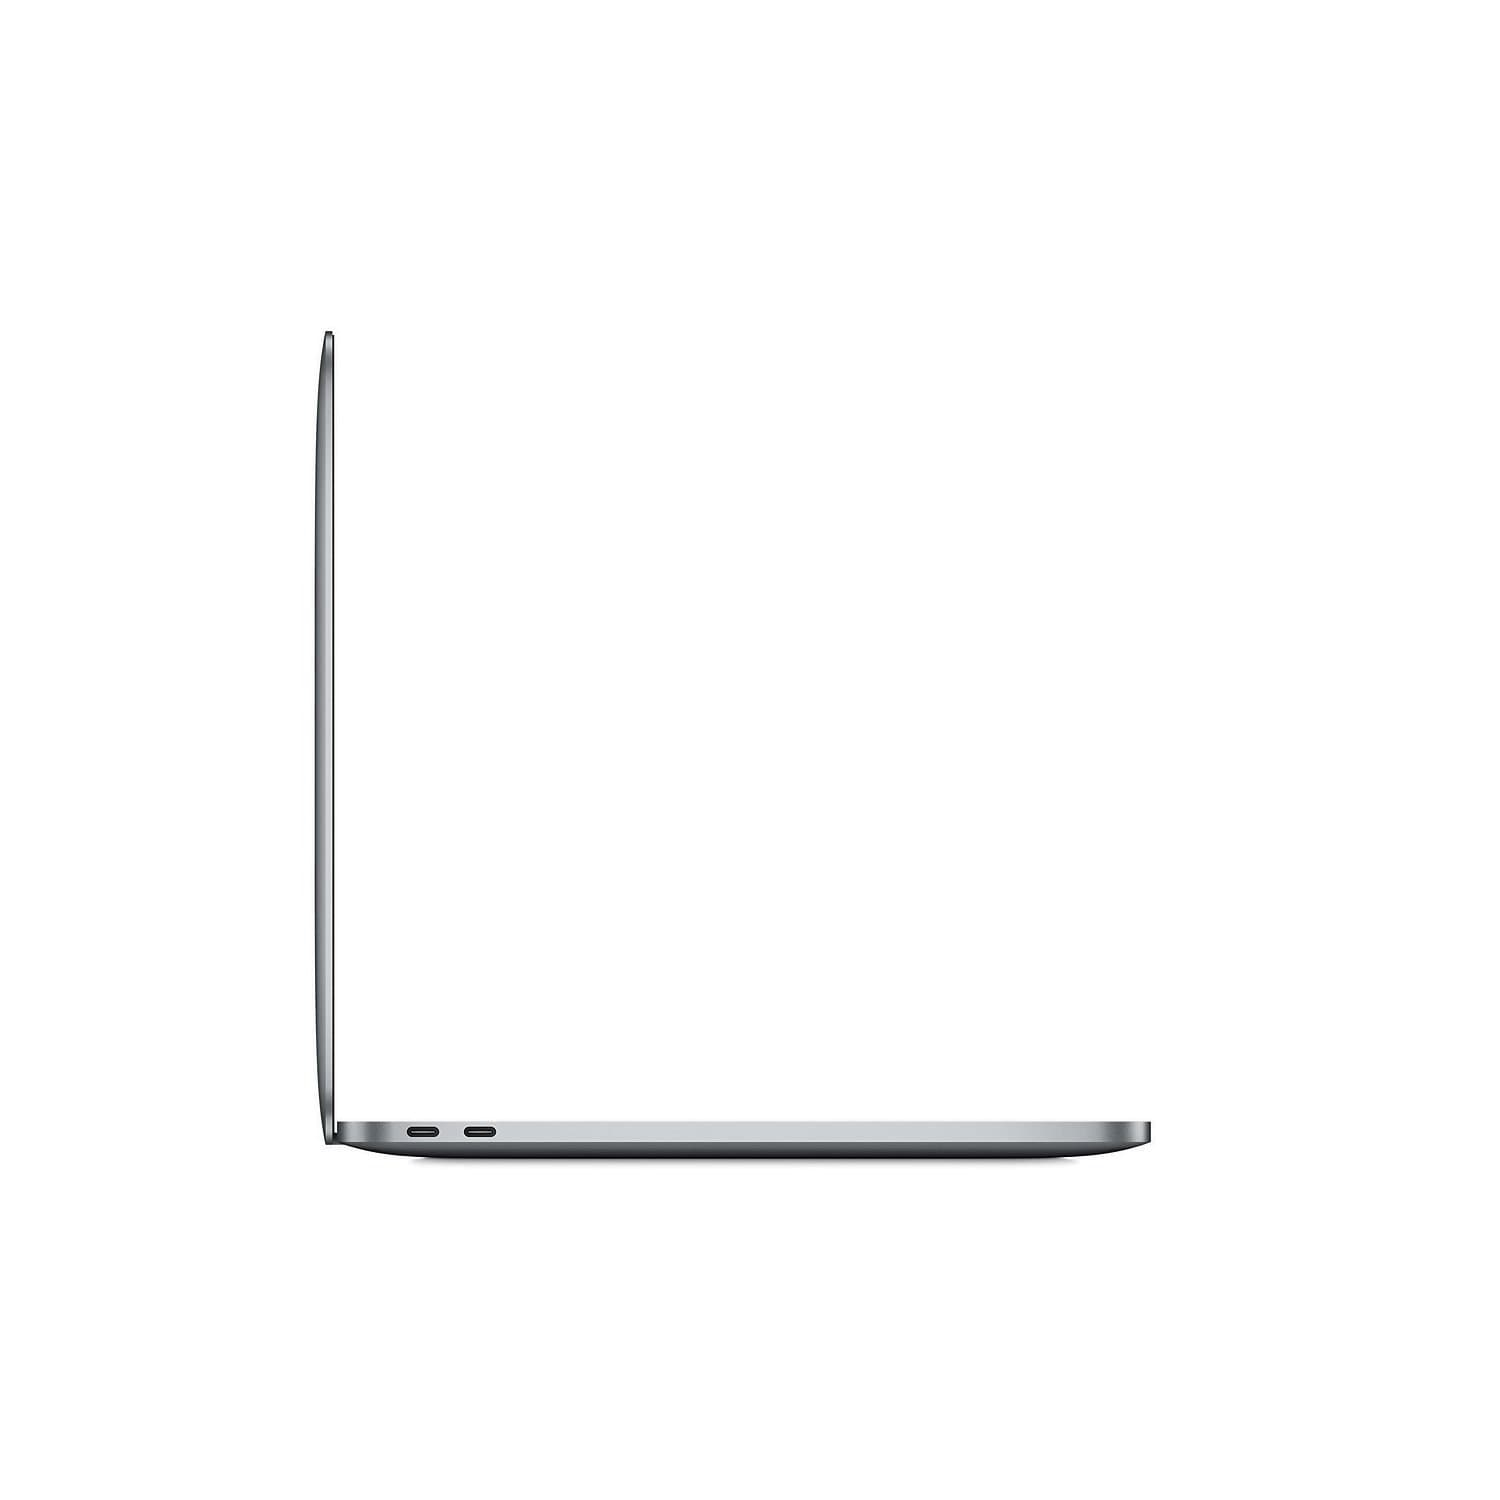 Laptop APPLE MacBook Pro 13.3 Gwiezdna szarość MPXT2ZE/A i5/8GB/256GB SSD/Iris Plus 640